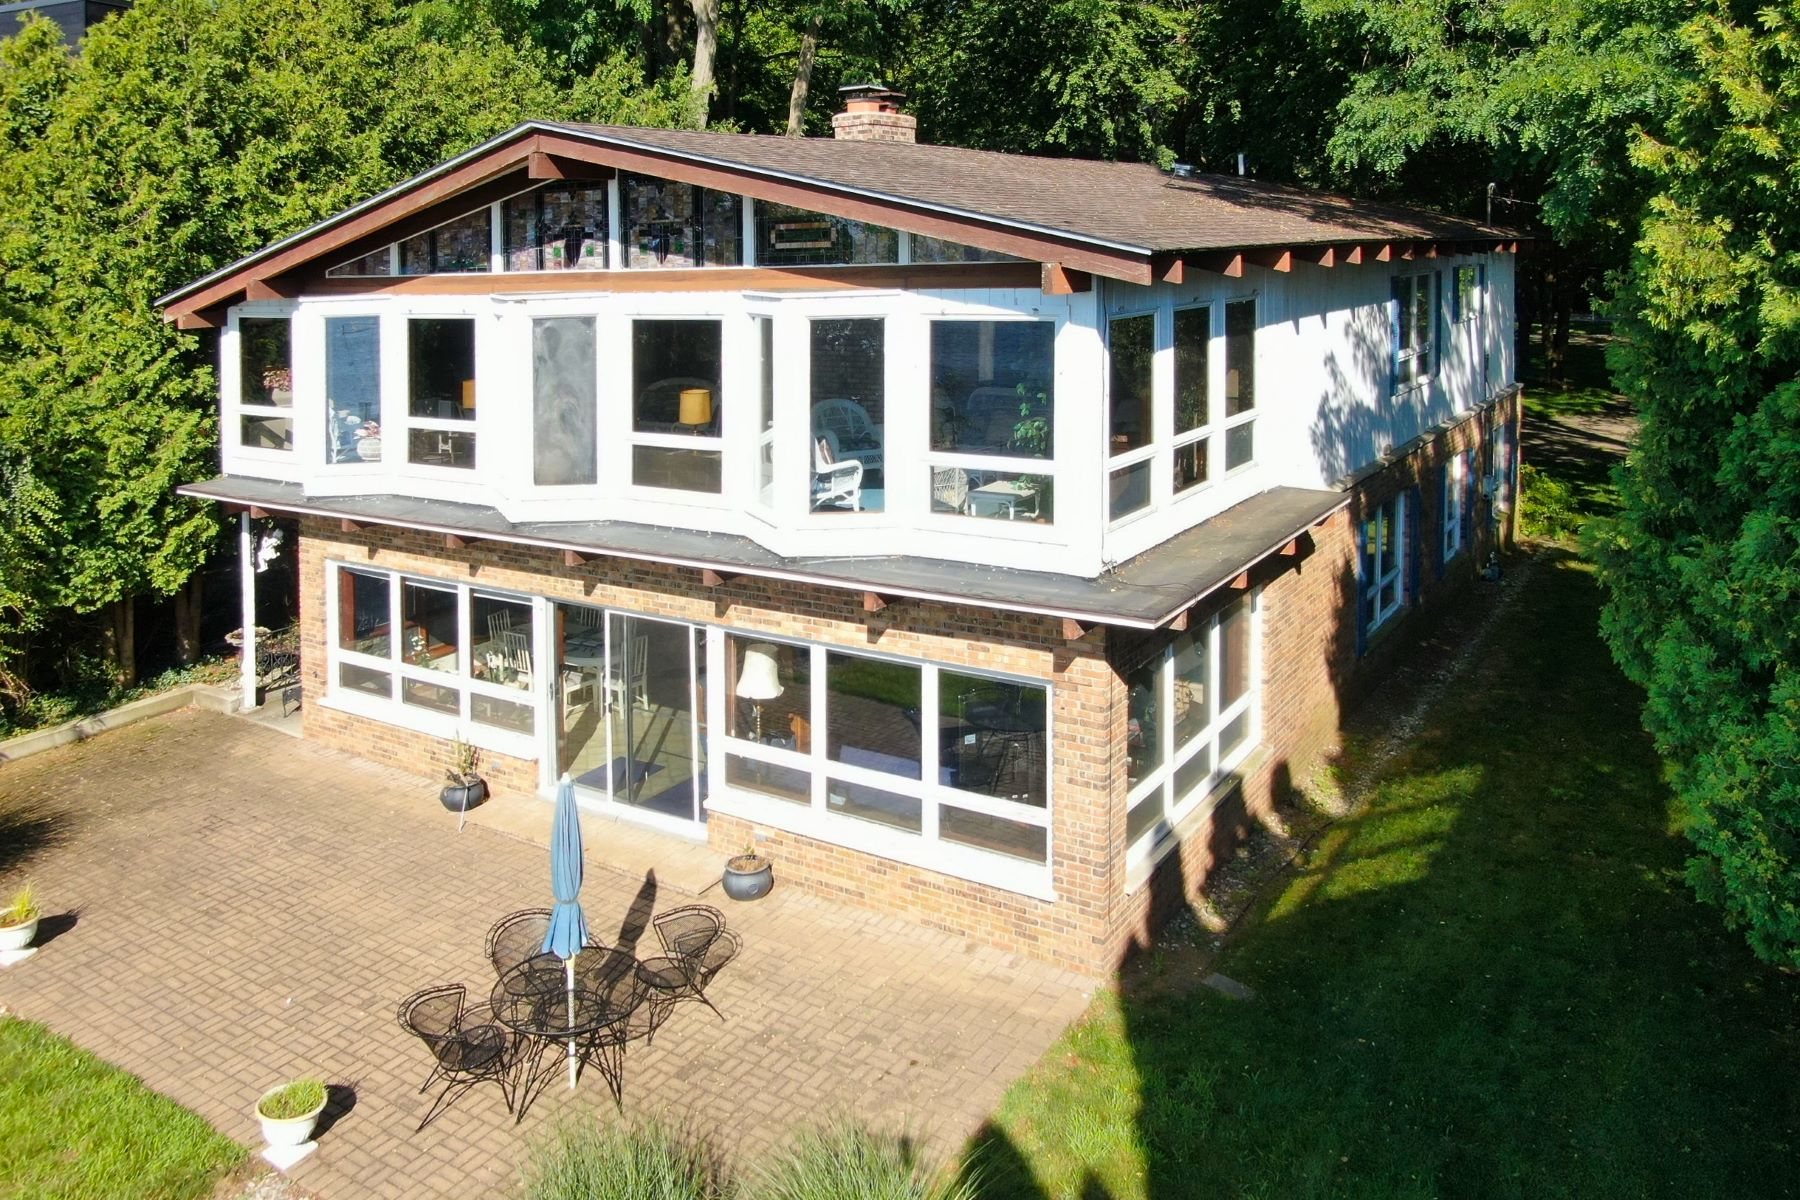 Single Family Homes for Sale at Waterfront Home in Incomparable Location 111 Park Street Saugatuck, Michigan 49453 United States